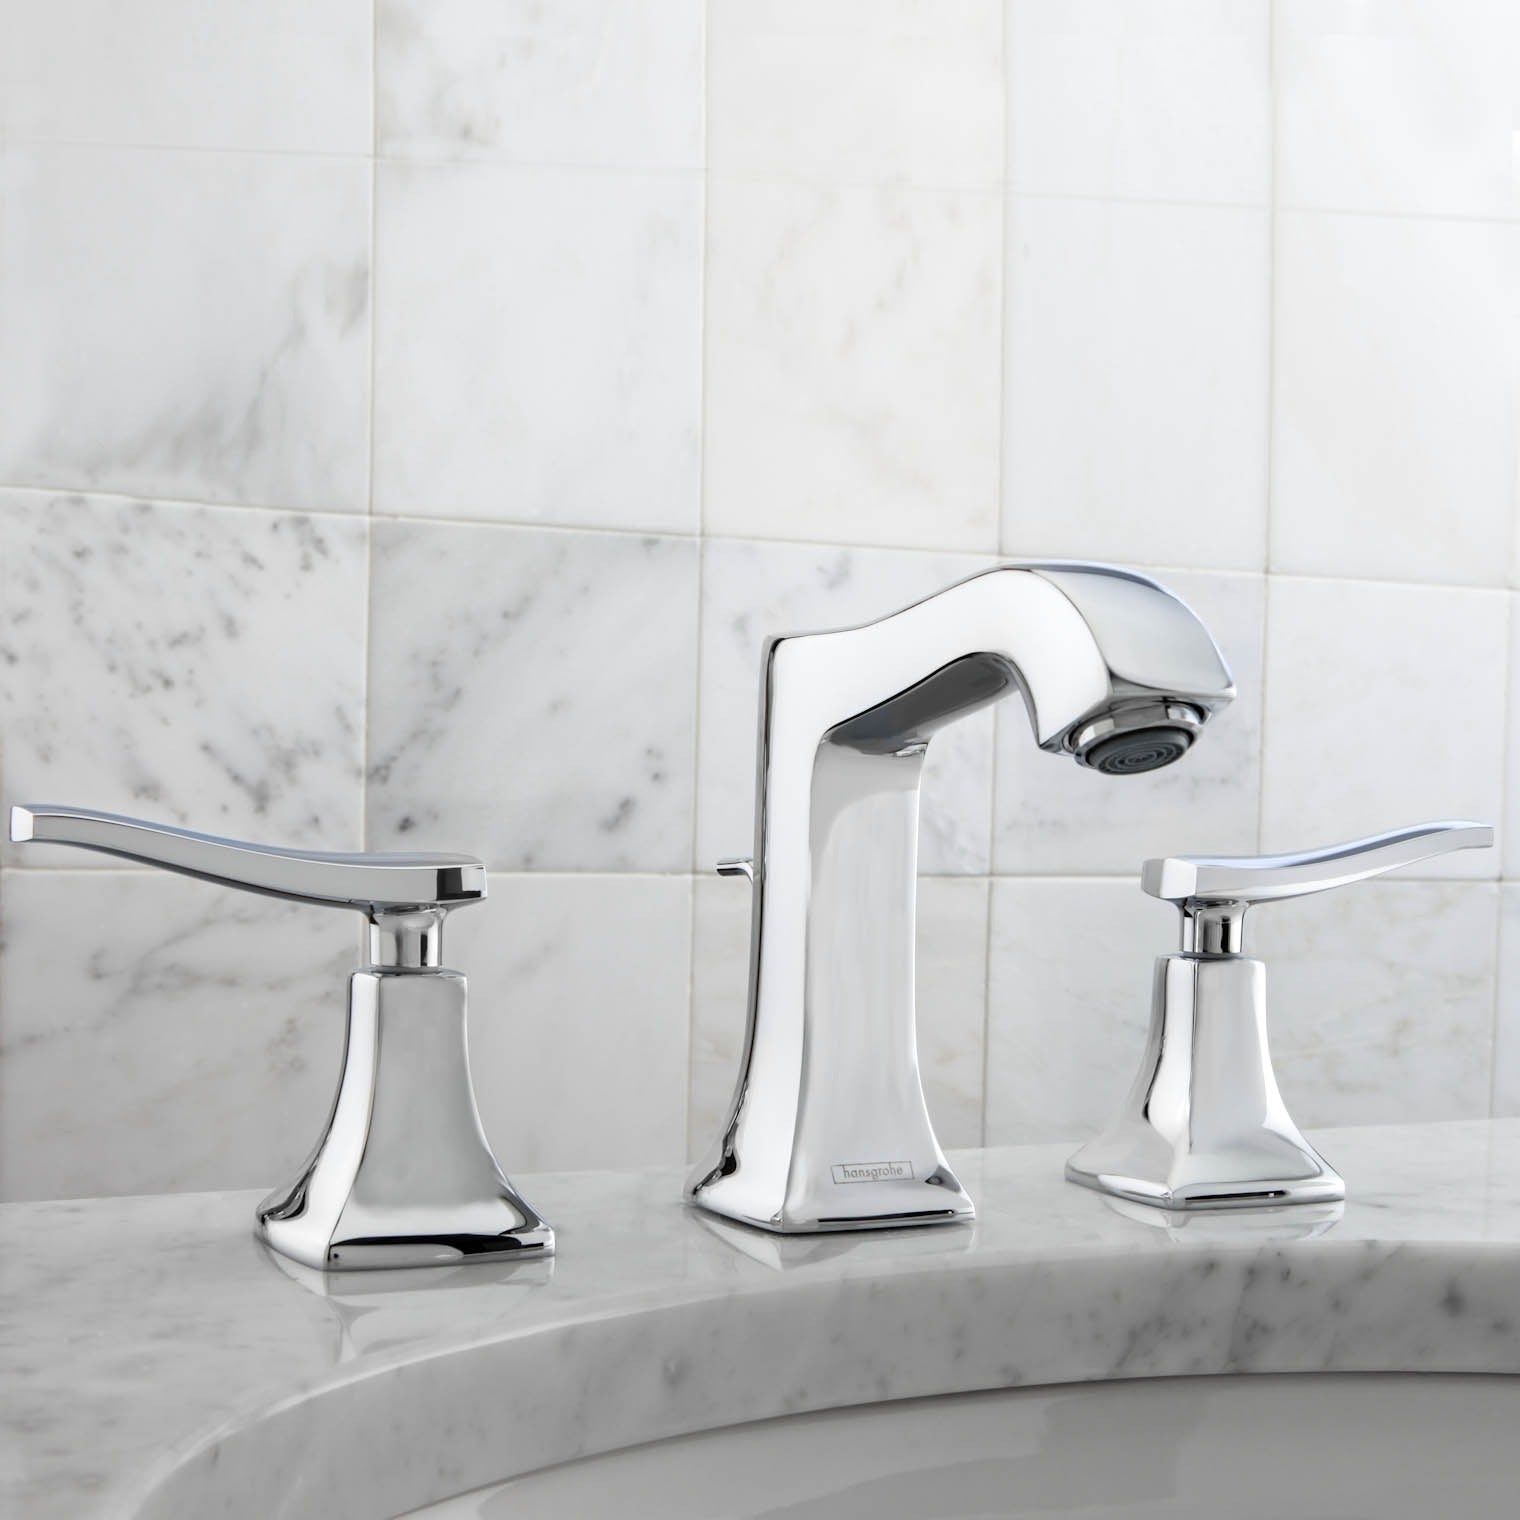 m faucets faucet proportions hansgrohe kitchen talis down pull with x